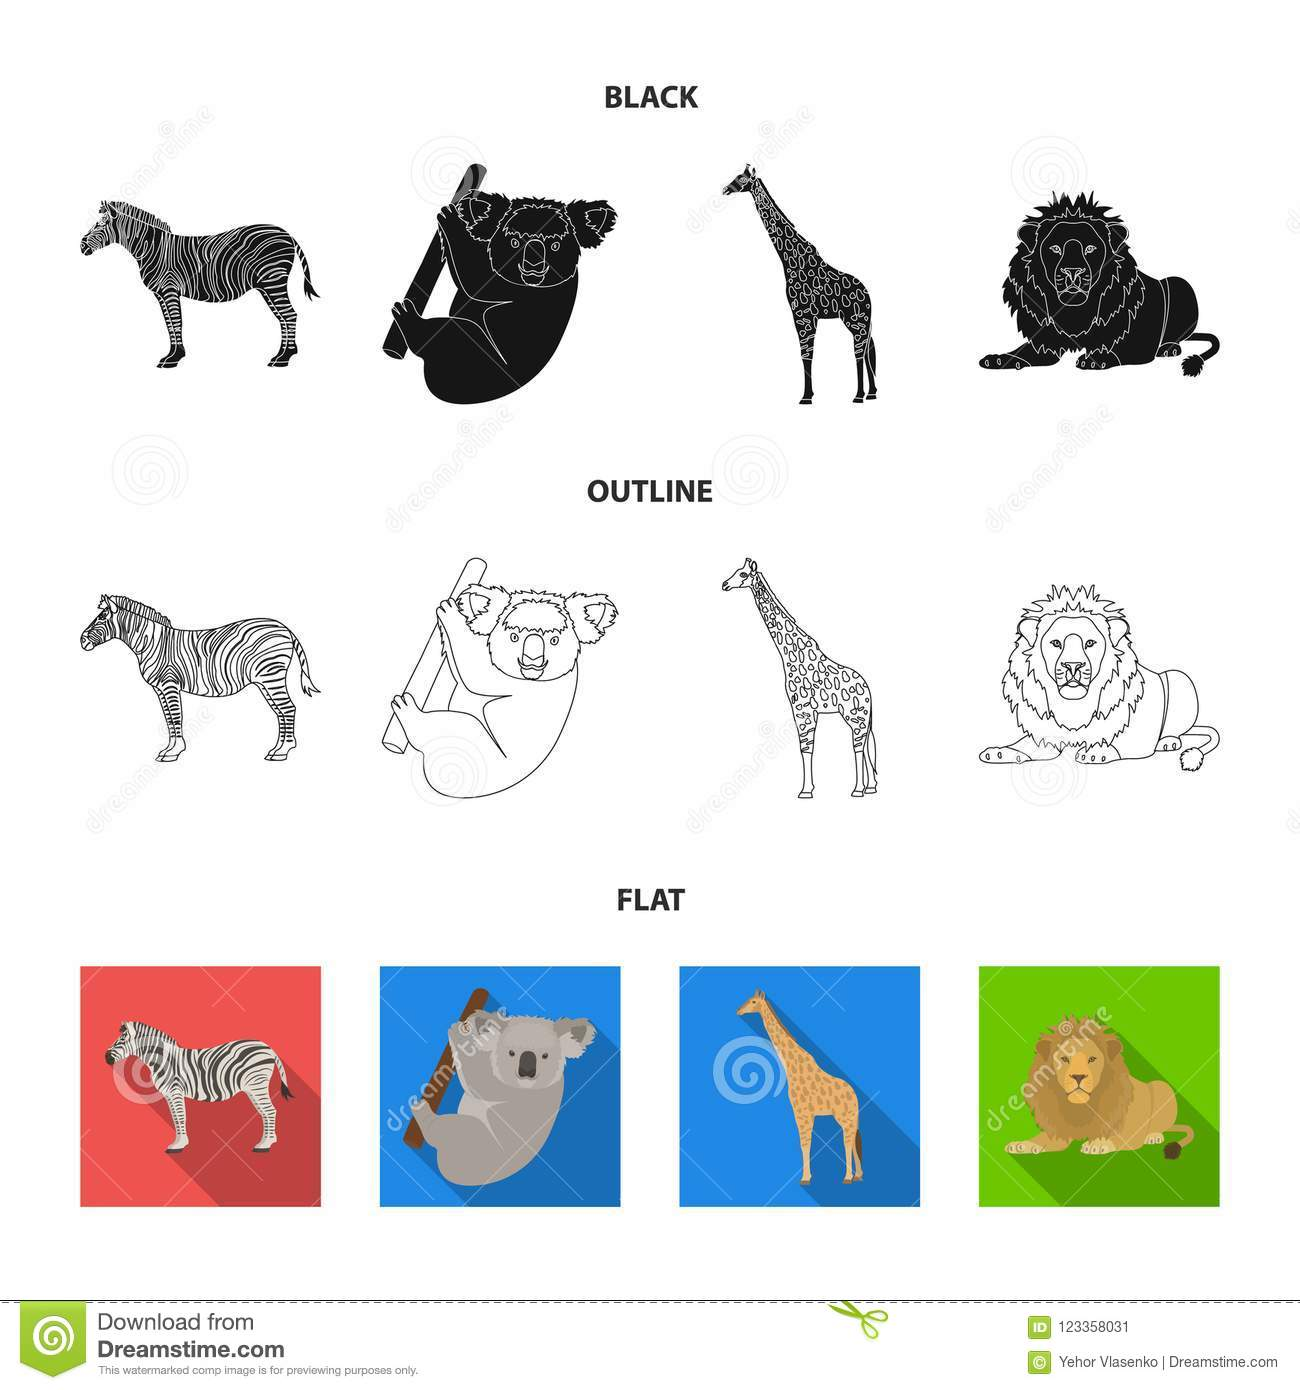 Wild animals of Africa are predators: a selection of sites